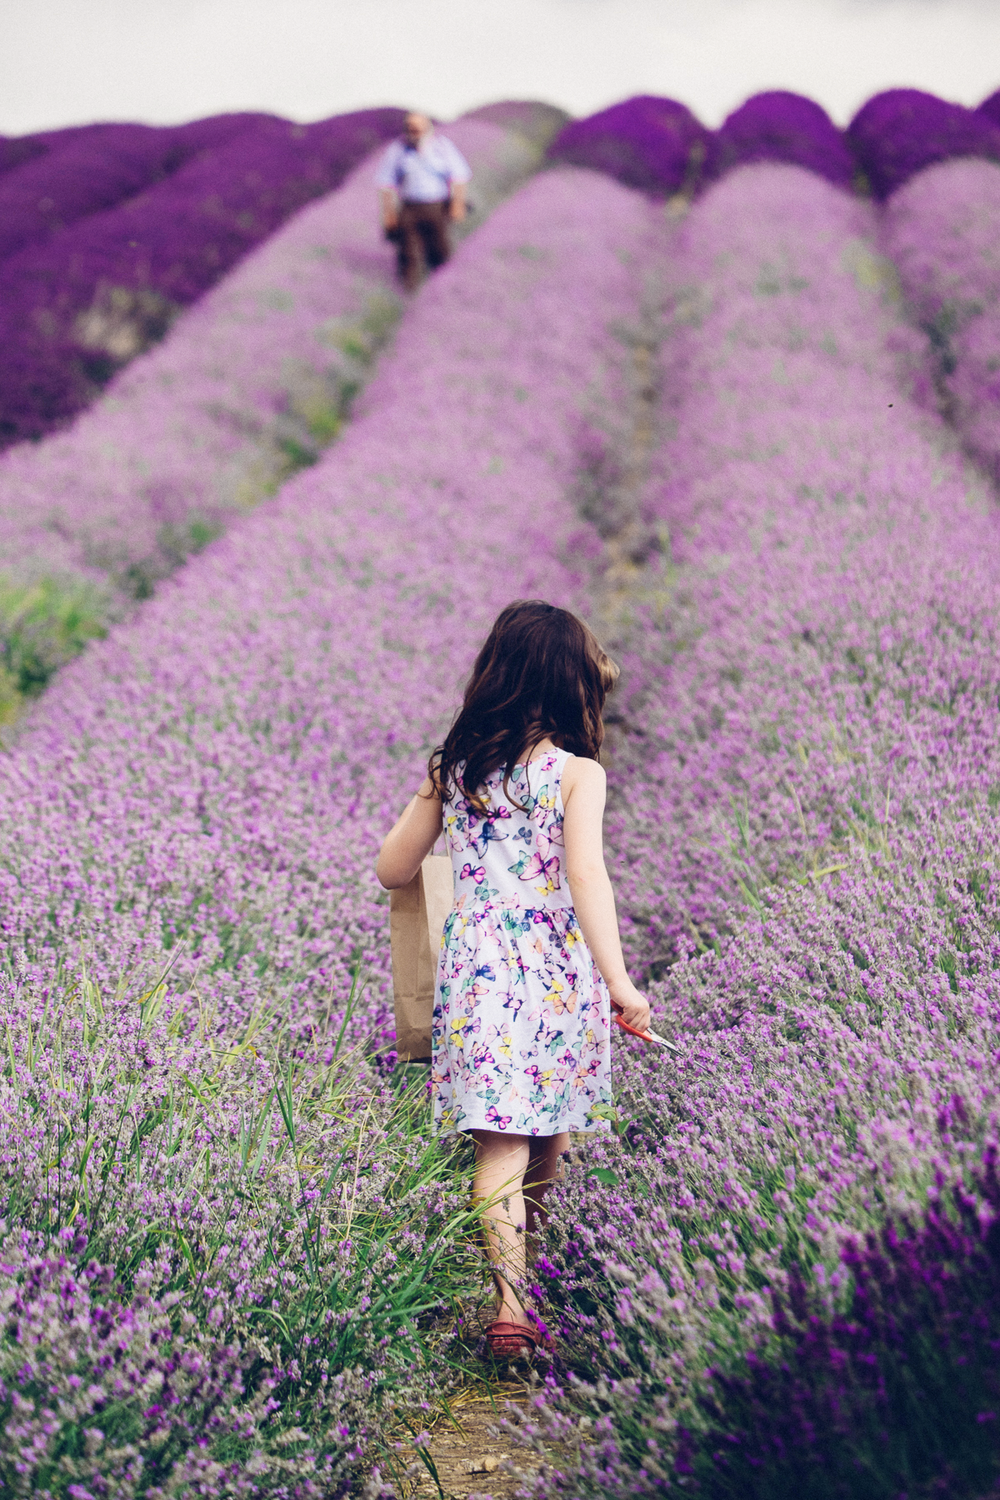 Girl walking in lavender, Hitchin Lavender